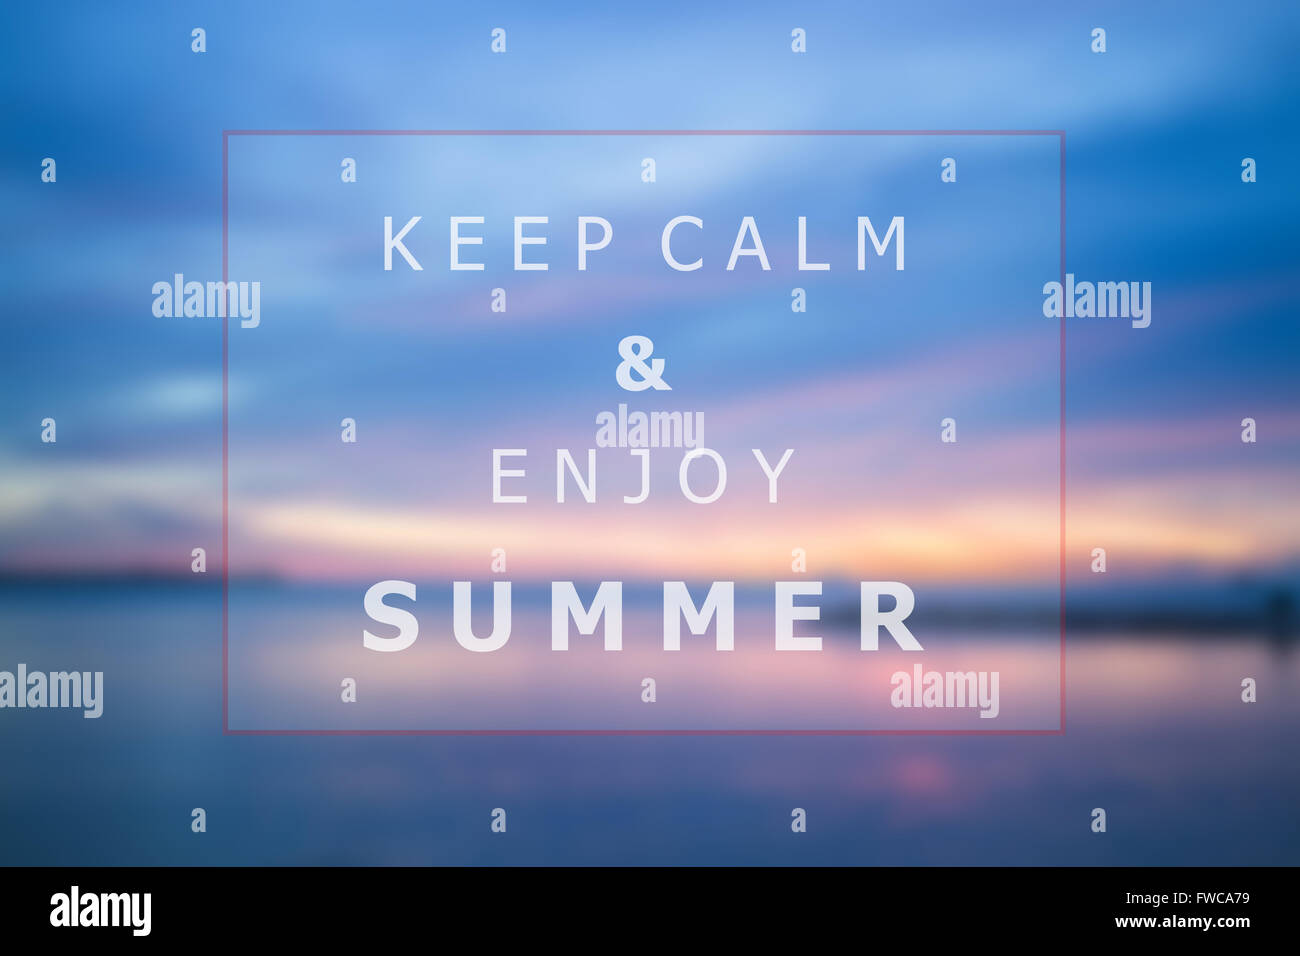 Keep Calm And Enjoy Summer Quote Poster Background Design, Stock Photo